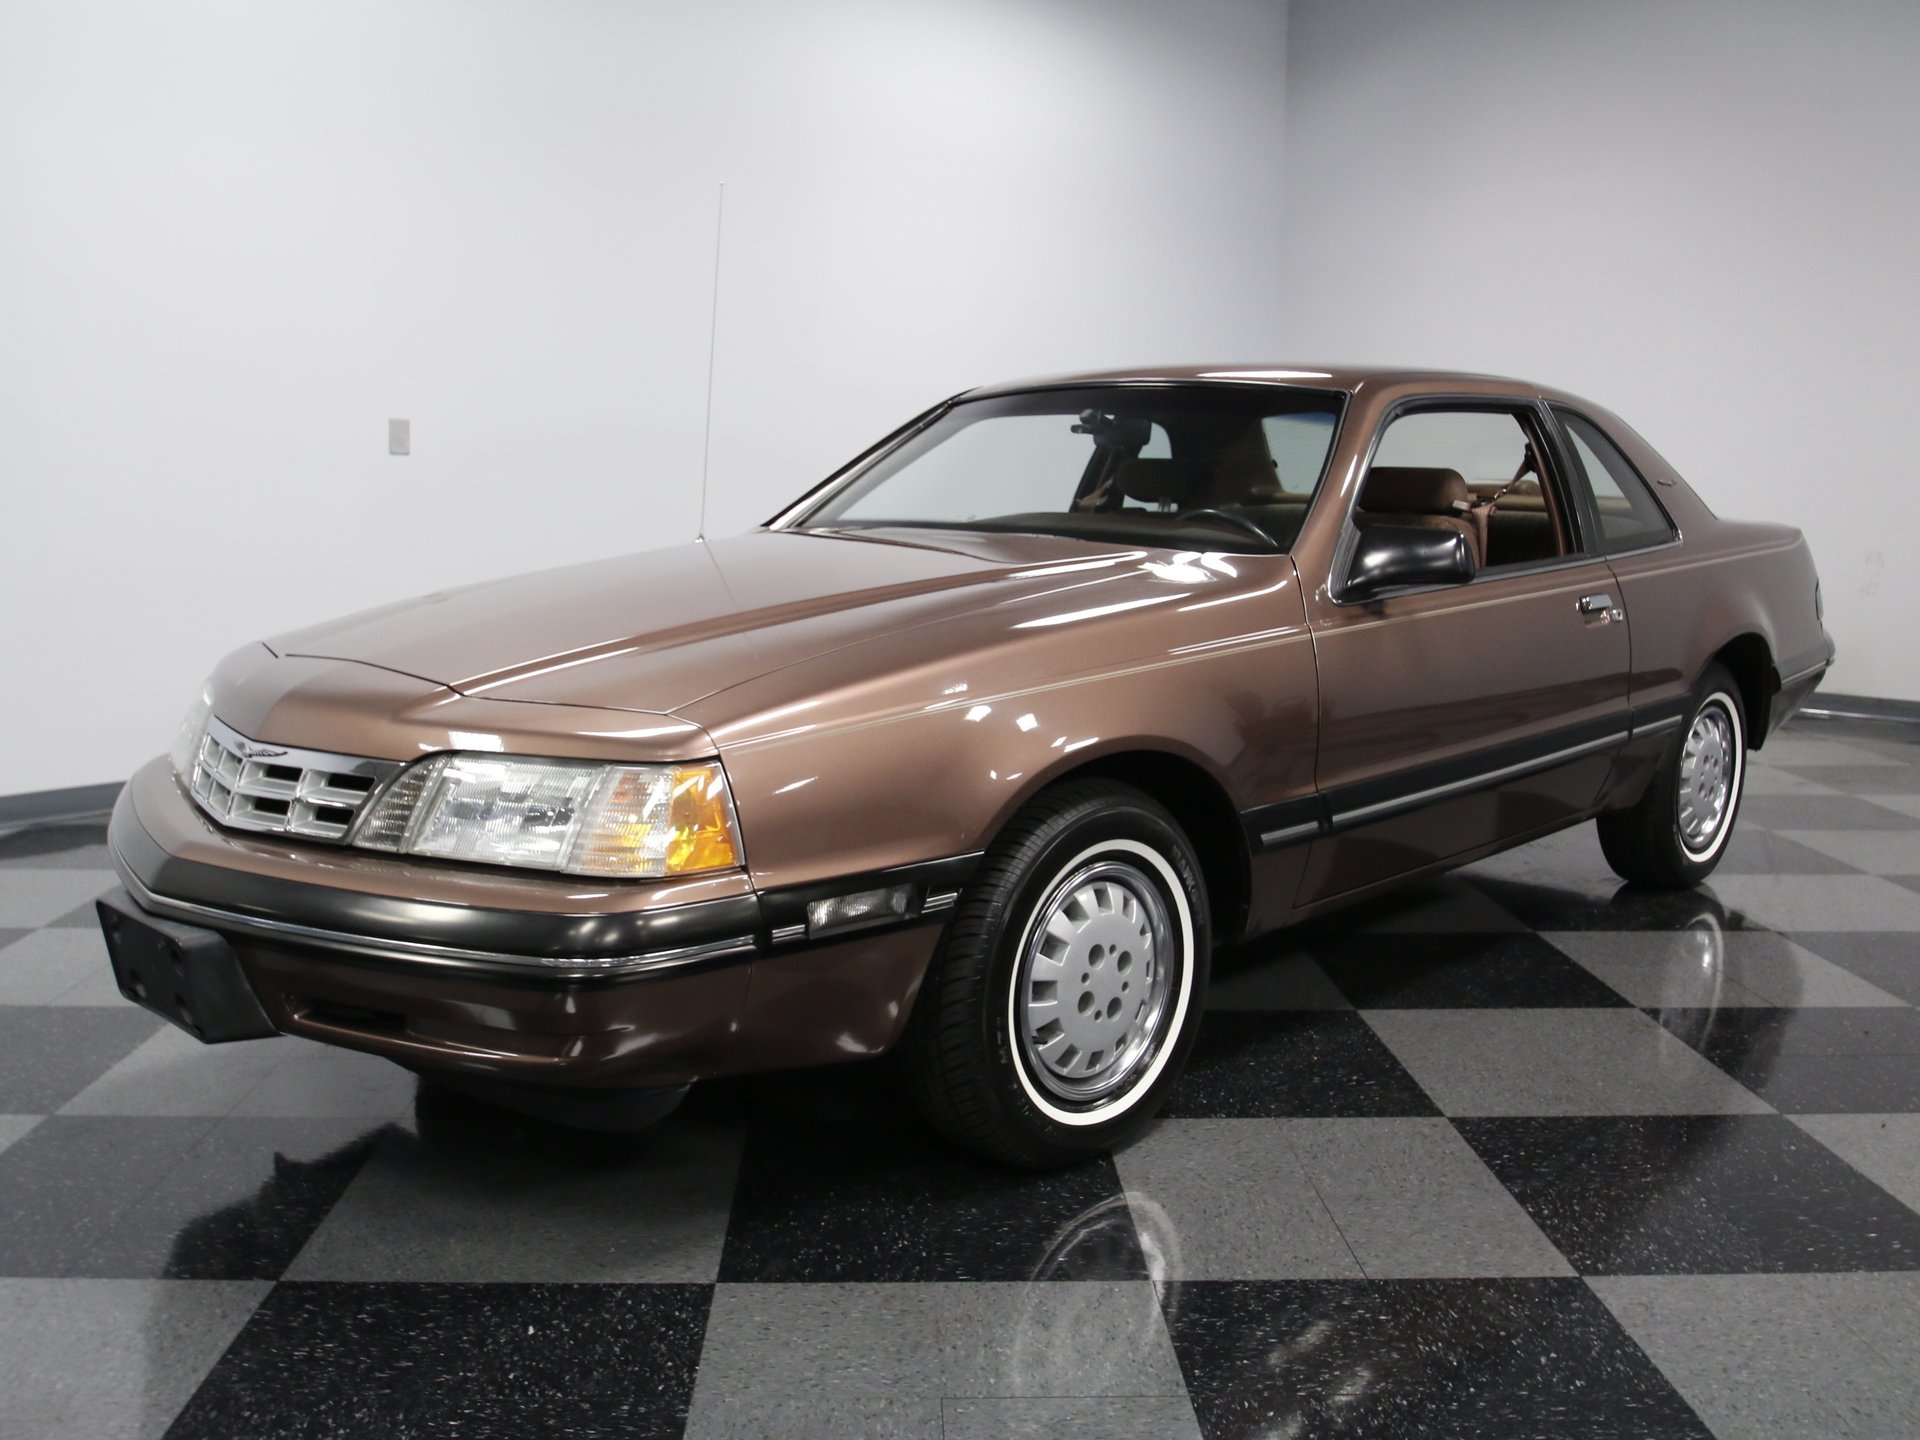 1988 ford thunderbird streetside classics the nation s trusted classic car consignment dealer 1988 ford thunderbird streetside